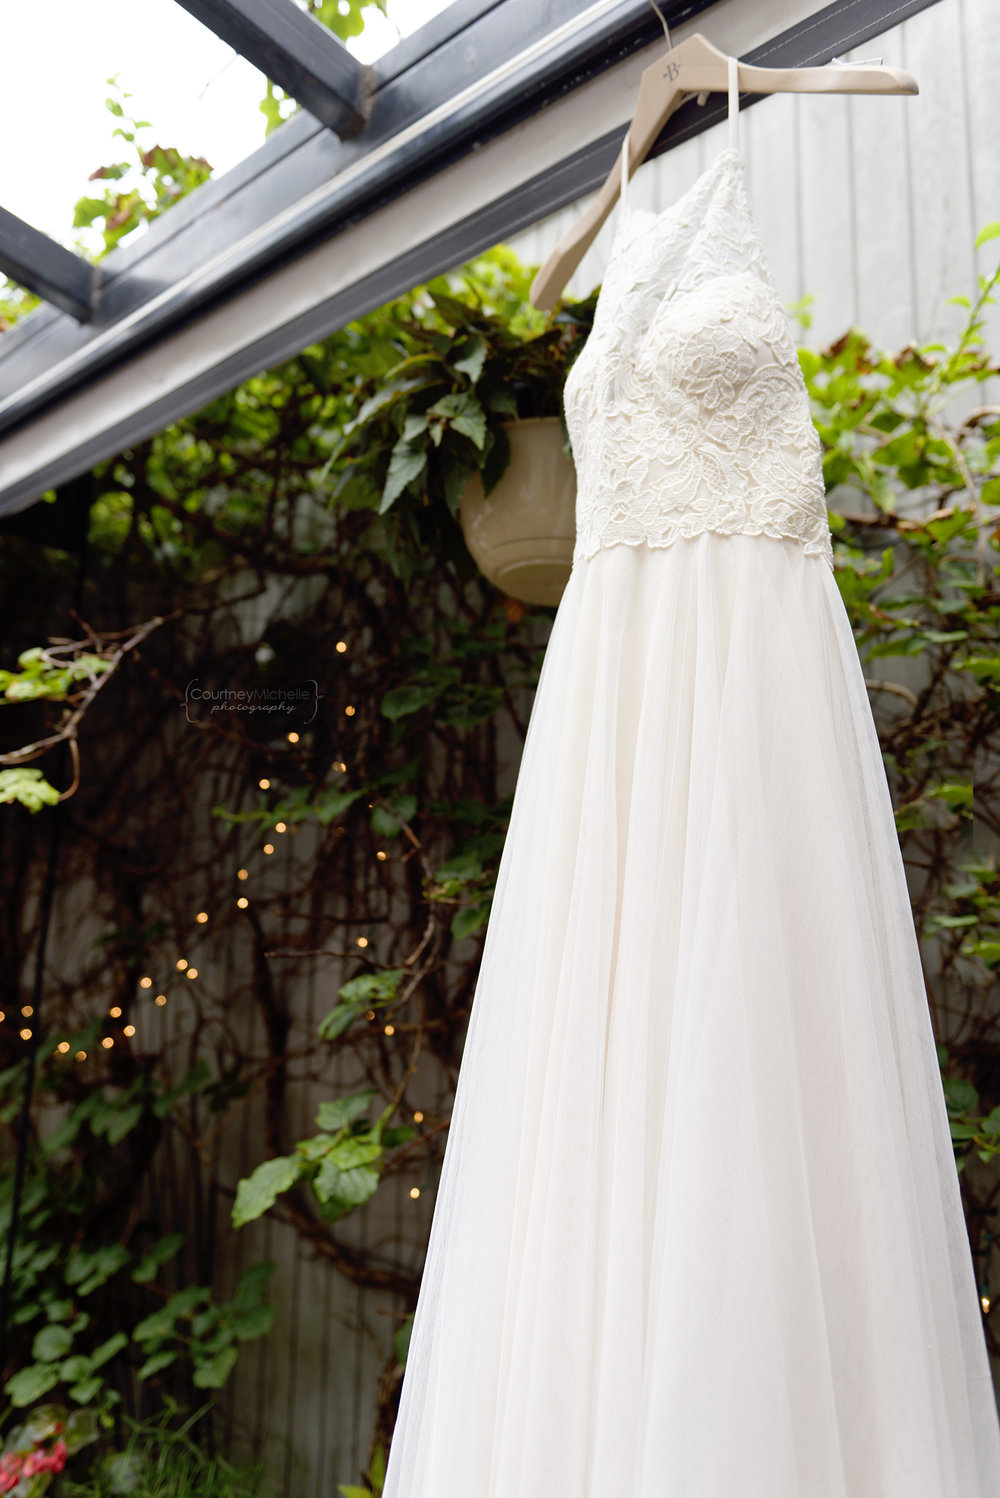 wedding-dress-volo-chicago-wedding-patio©COPYRIGHTCMP-_DSC4452edit.jpg